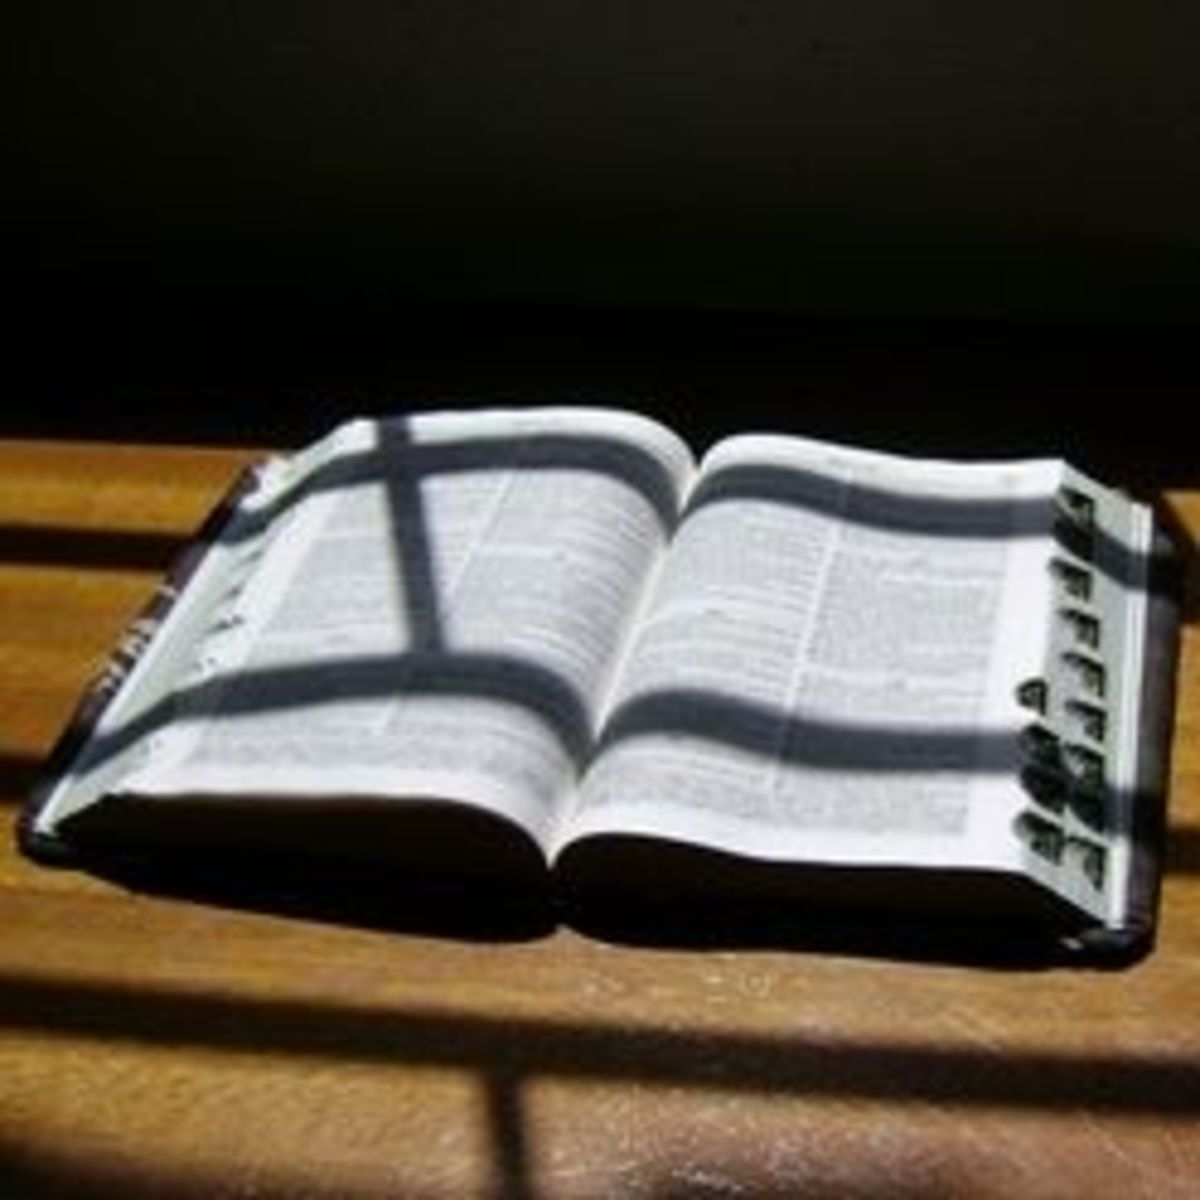 Devotions from the Old Testament